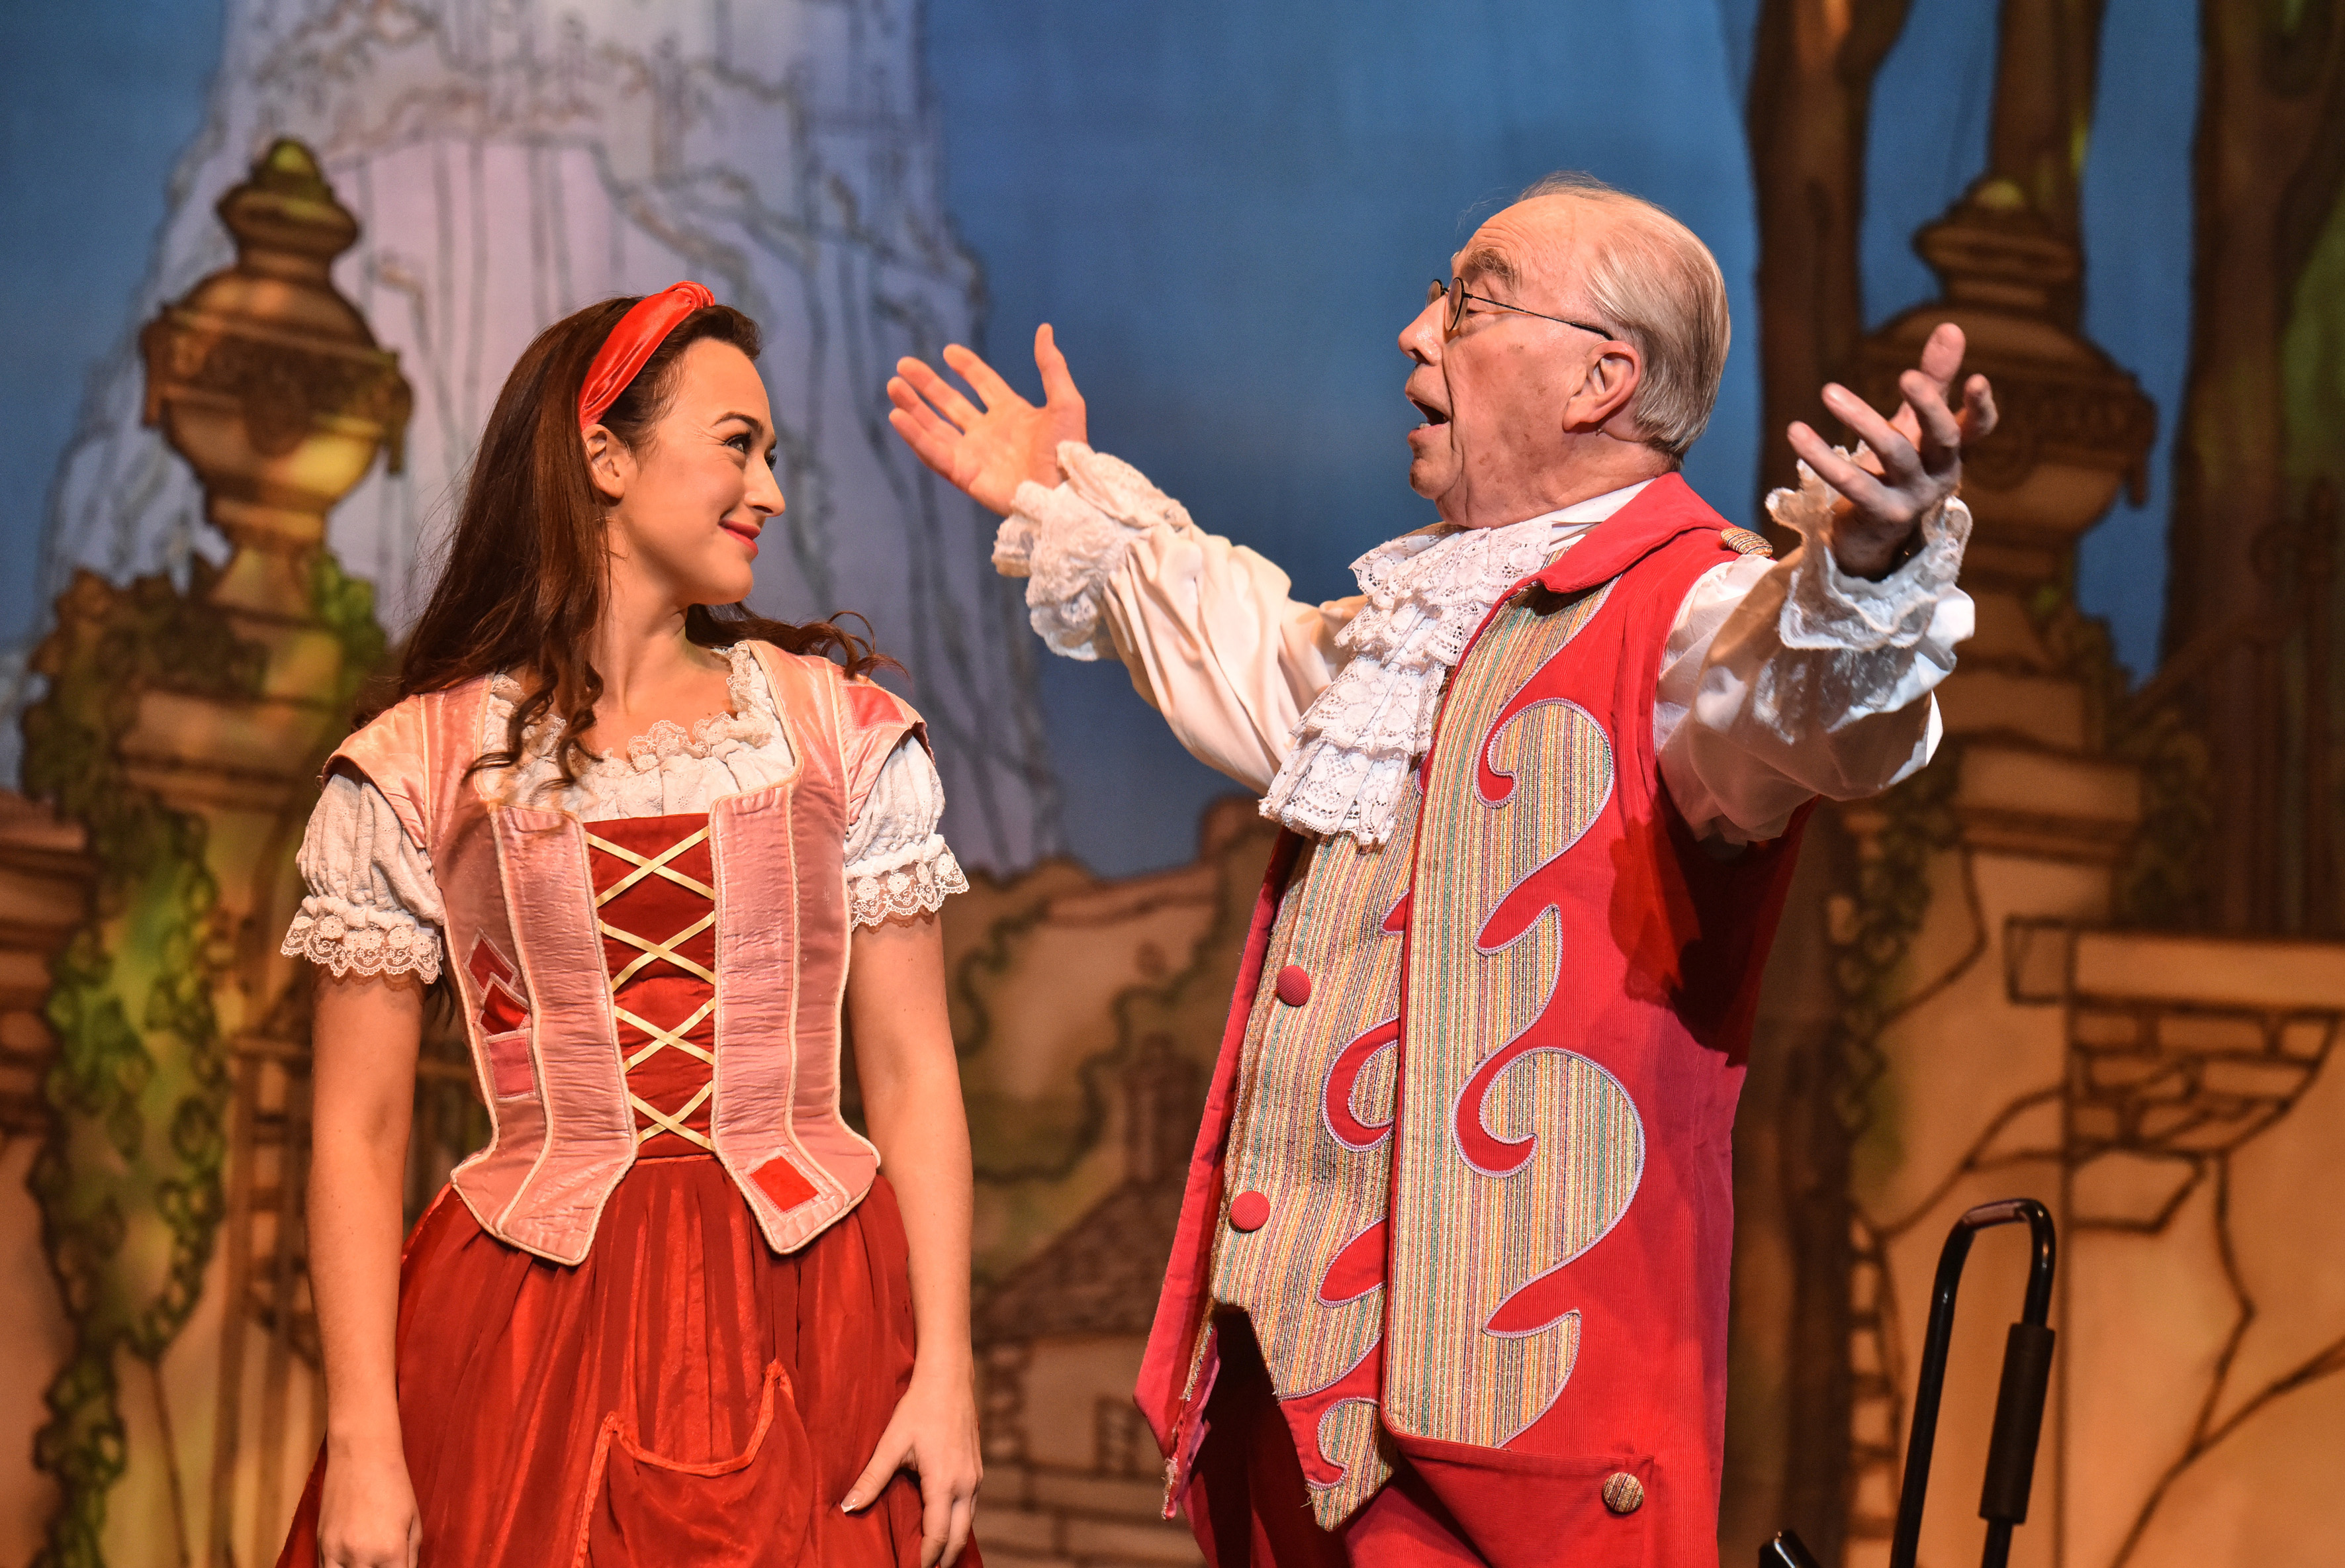 2 Cinderella_Charlotte Haines and Bernie Clifton_5999_photo by Robert Day